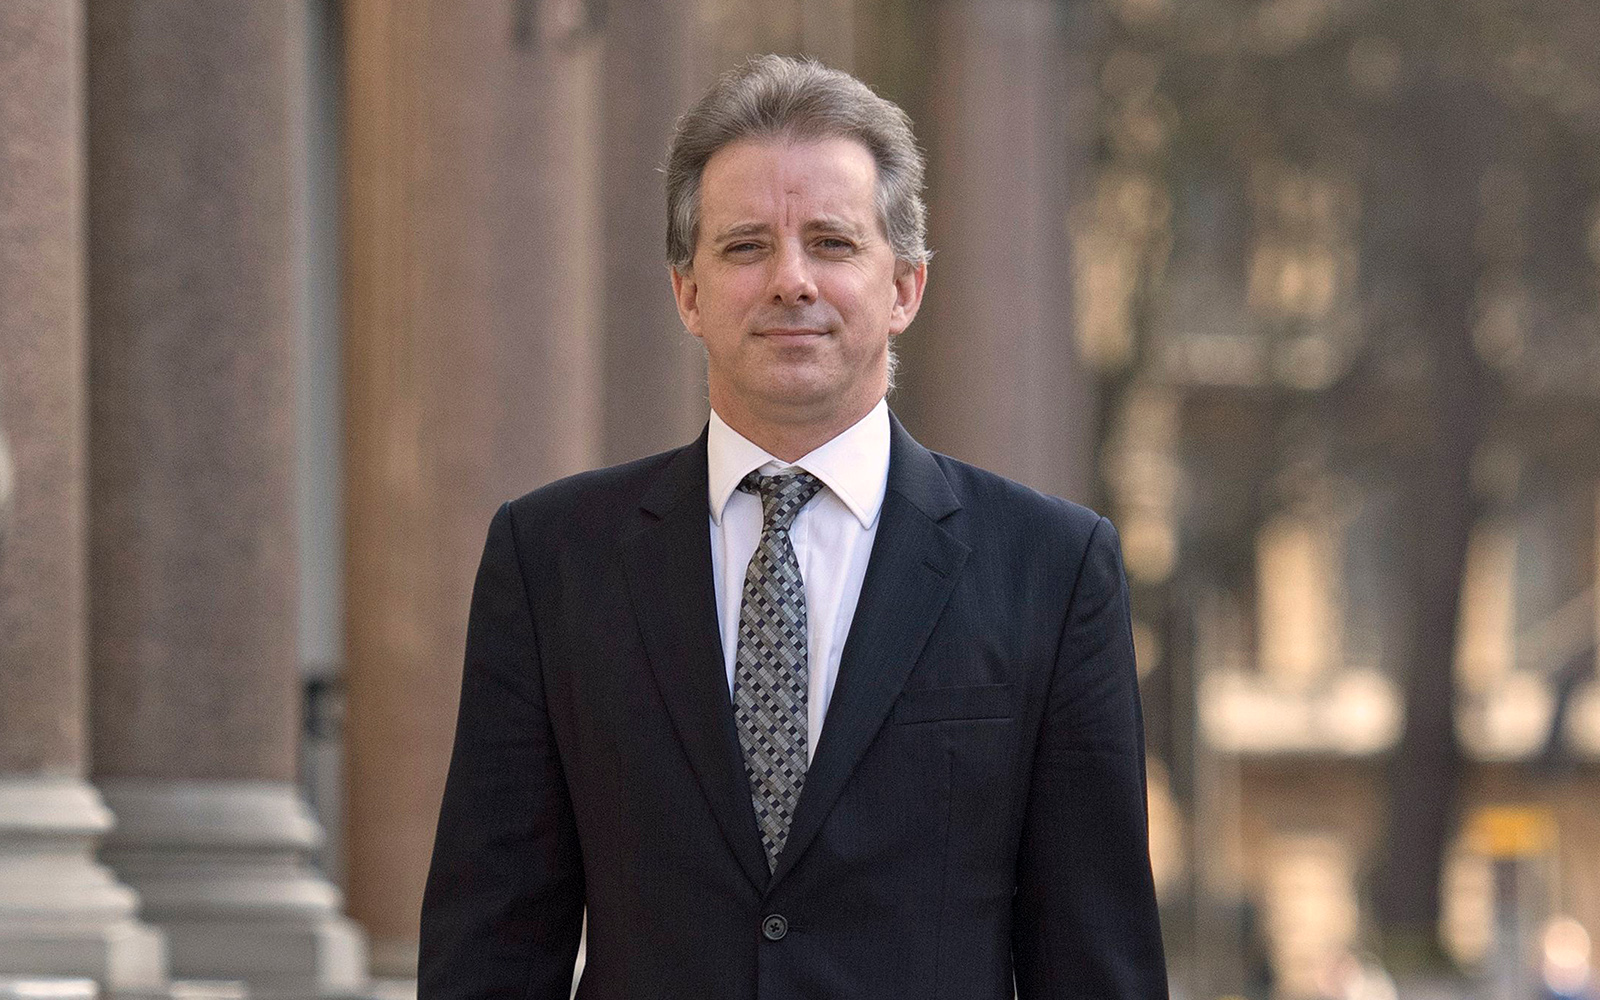 Federal Bureau of Investigation informant Christopher Steele was friends with Ivanka Trump